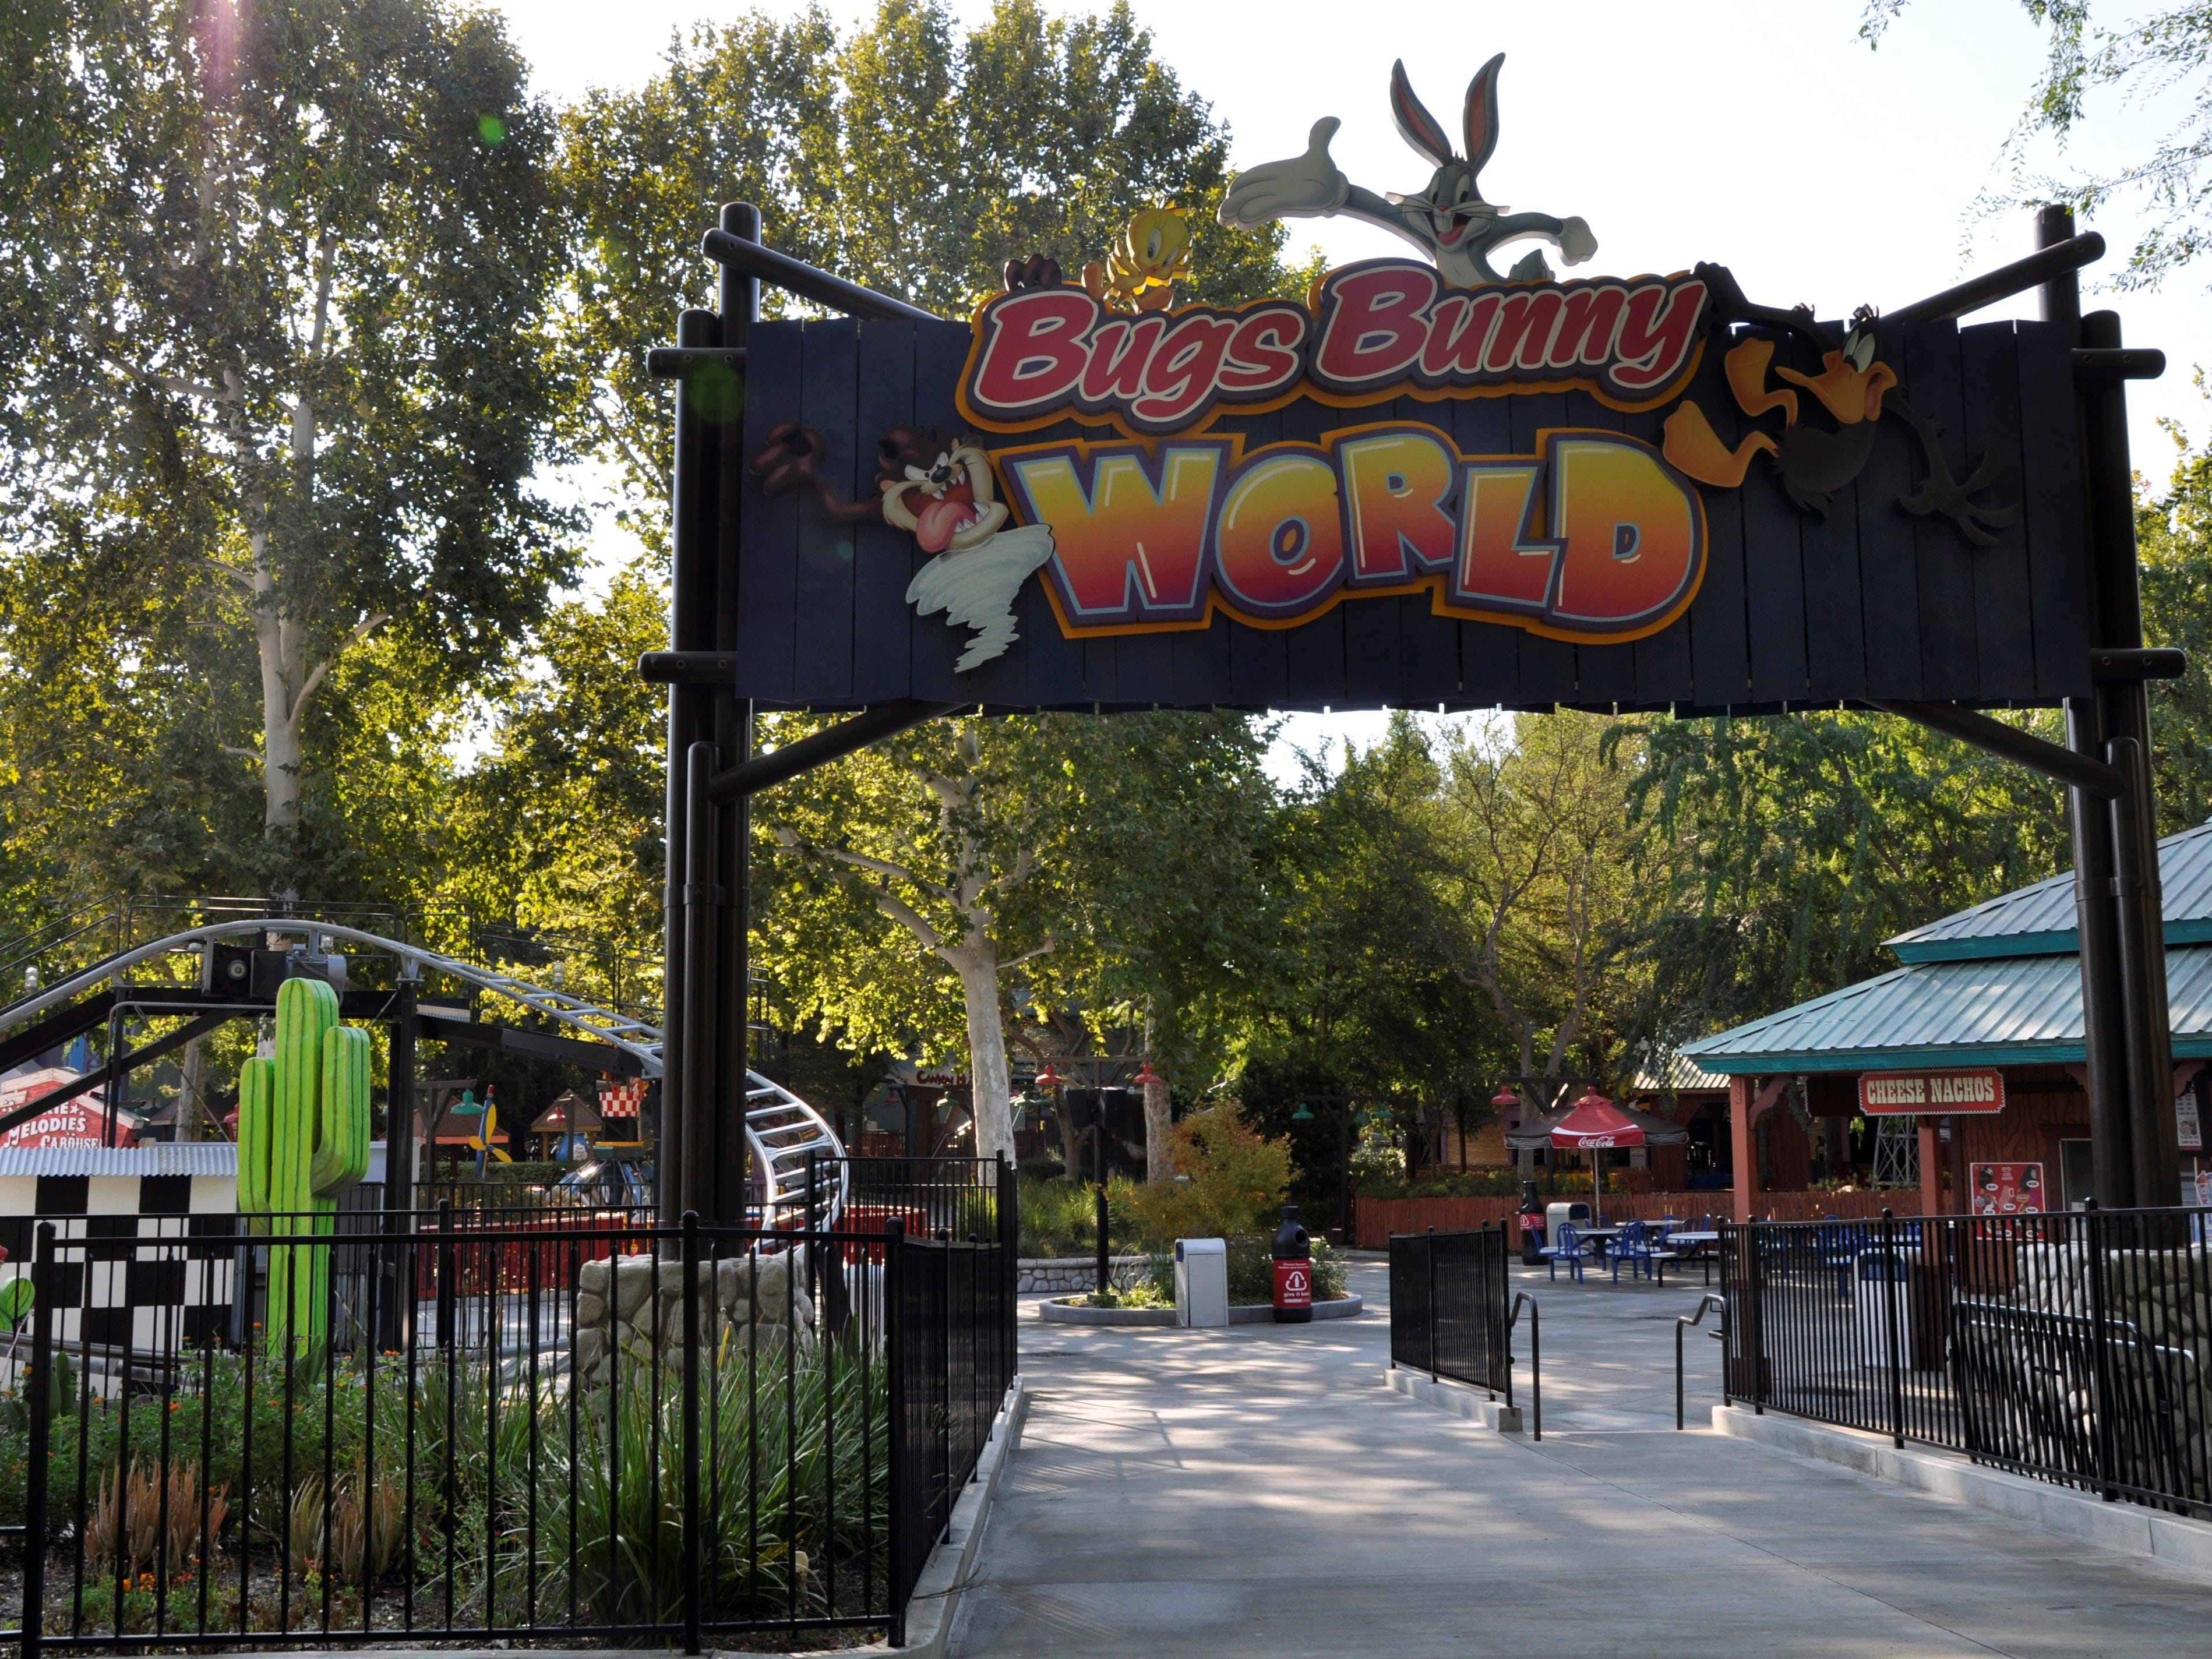 Younger children will enjoy Bugs Bunny World at Six Flags Magic Mountain.